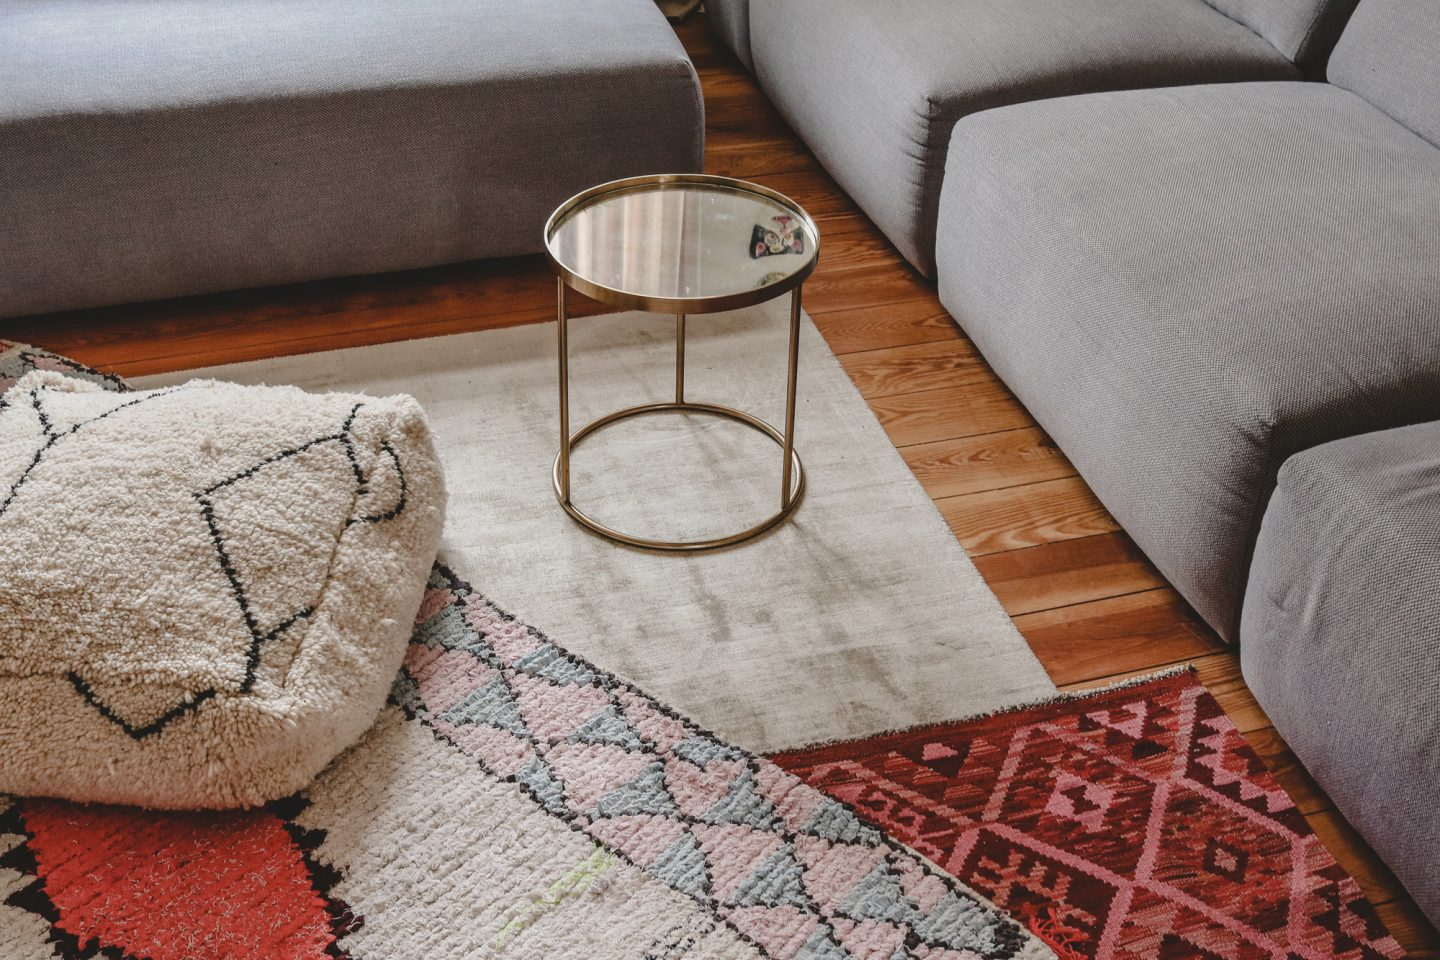 Interior-Trend: Rug Layering | Anzeige, enthält Affiliate Links